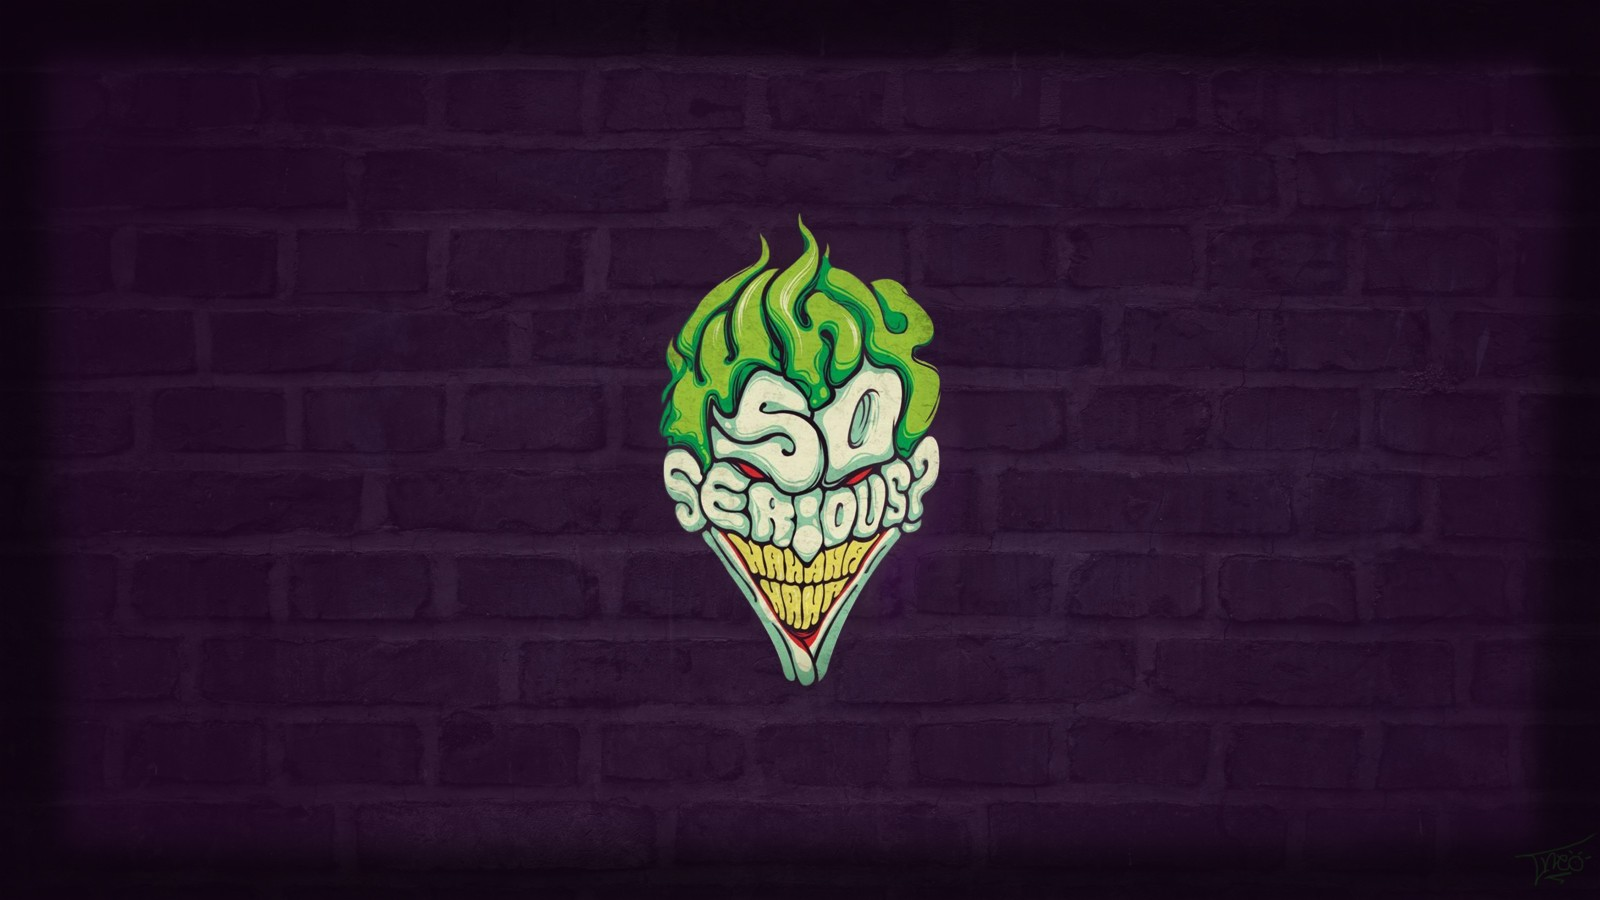 2048x1152 so serious joker 2048x1152 resolution hd 4k wallpapers images backgrounds photos - Joker brand wallpaper ...